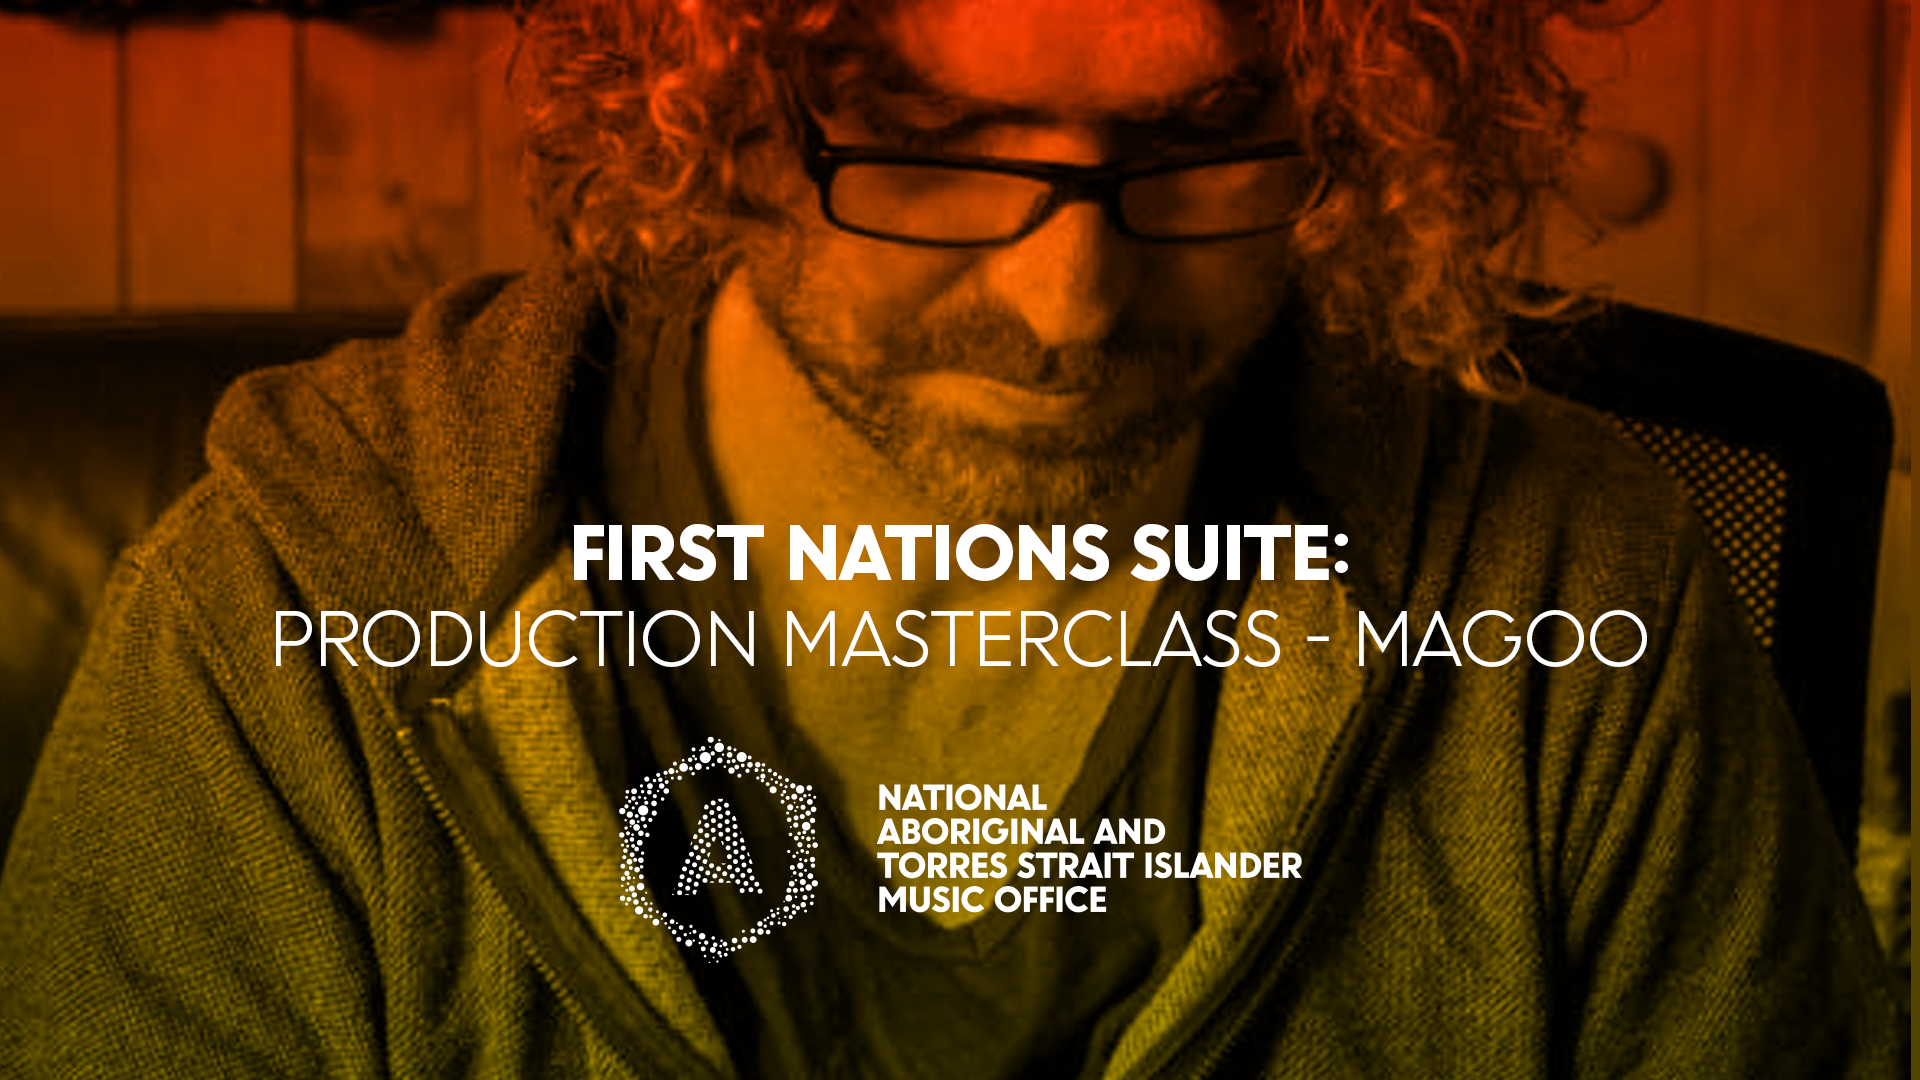 Sound engineer Magoo will be hosting NATSIMO's First Nations Suite production masterclass in February.